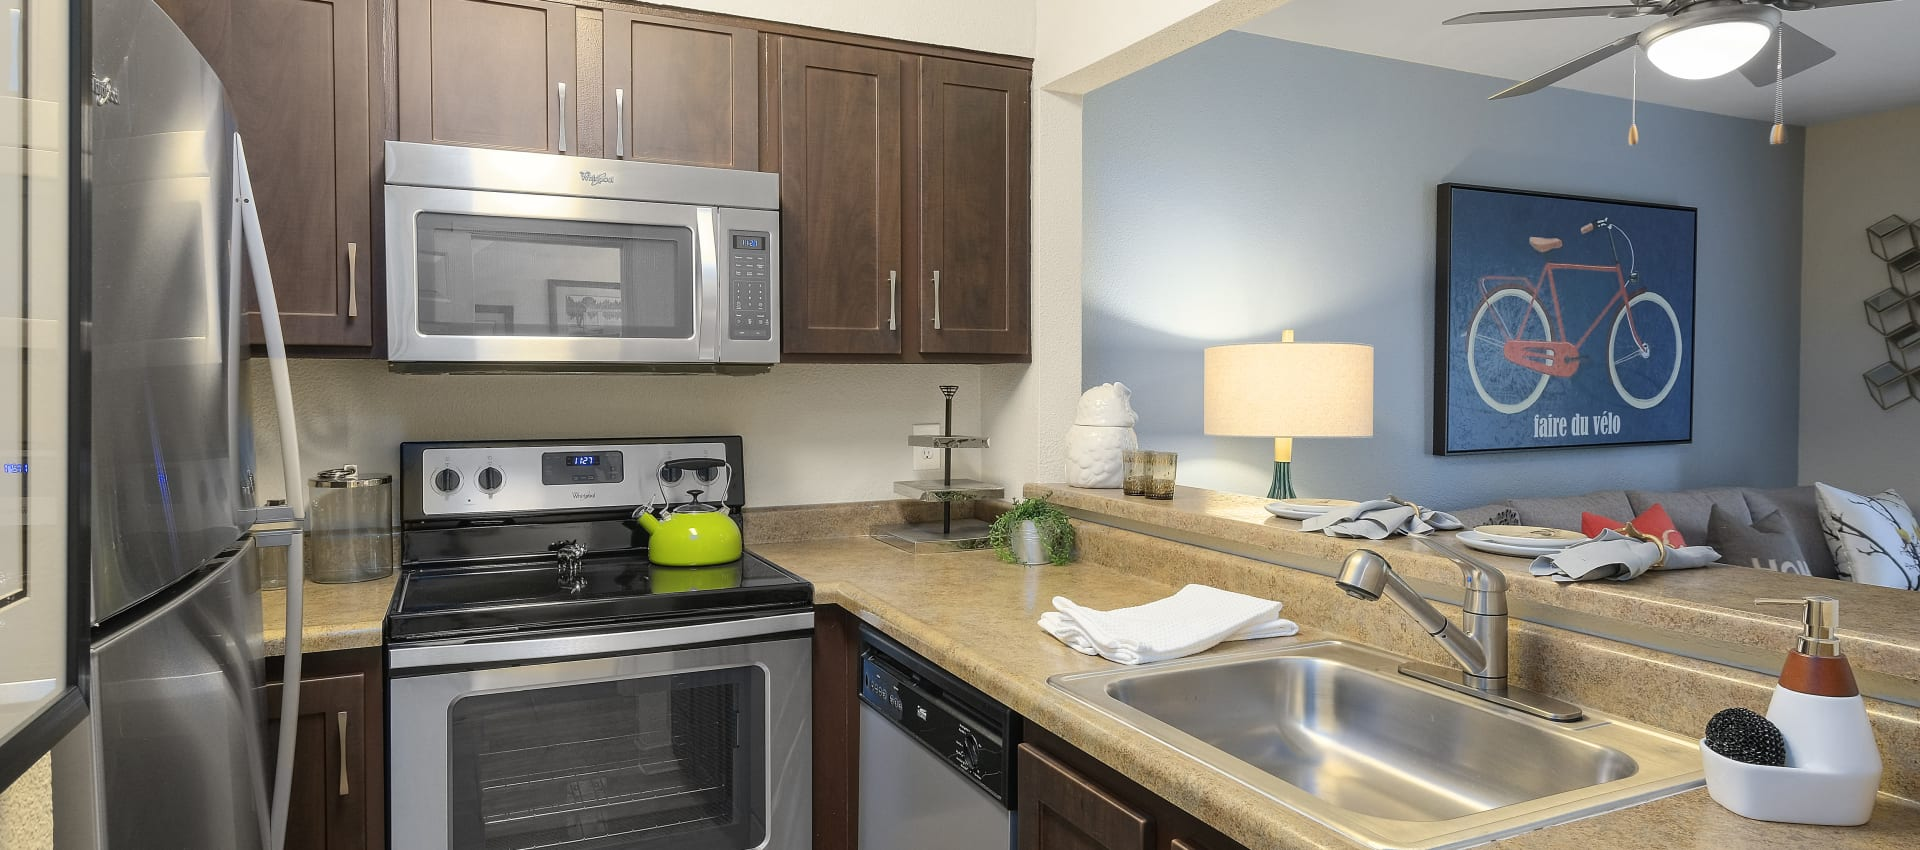 Kitchen With Stainless Appliances at Waterhouse Place in Beaverton, OR